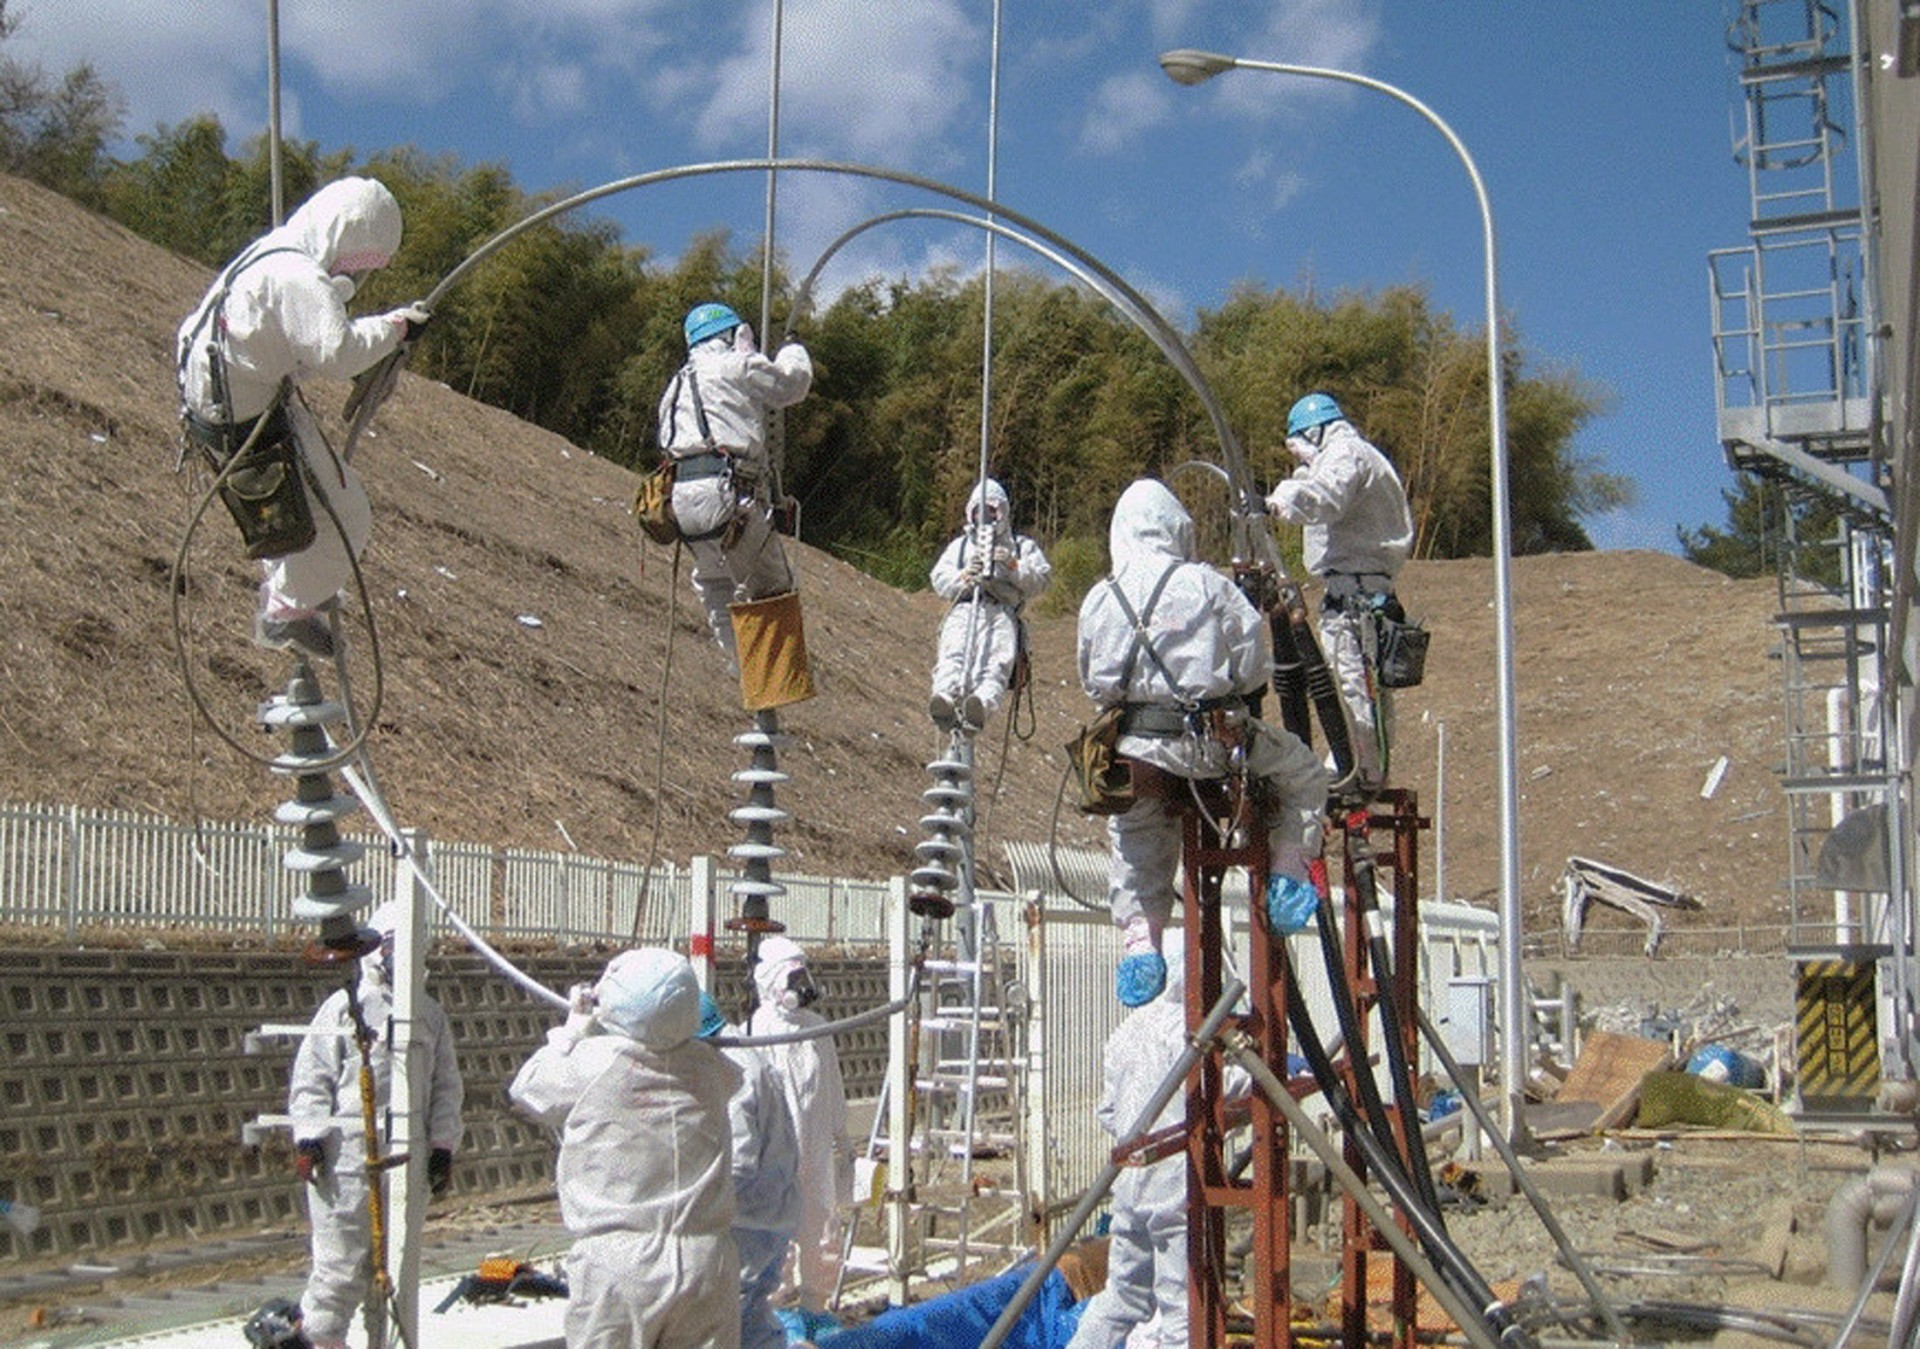 Handout file photo from Tokyo Electric Power Co. shows workers attempting to repair power lines at the Fukushima Daiichi Nuclear Power Plant in Tomioka